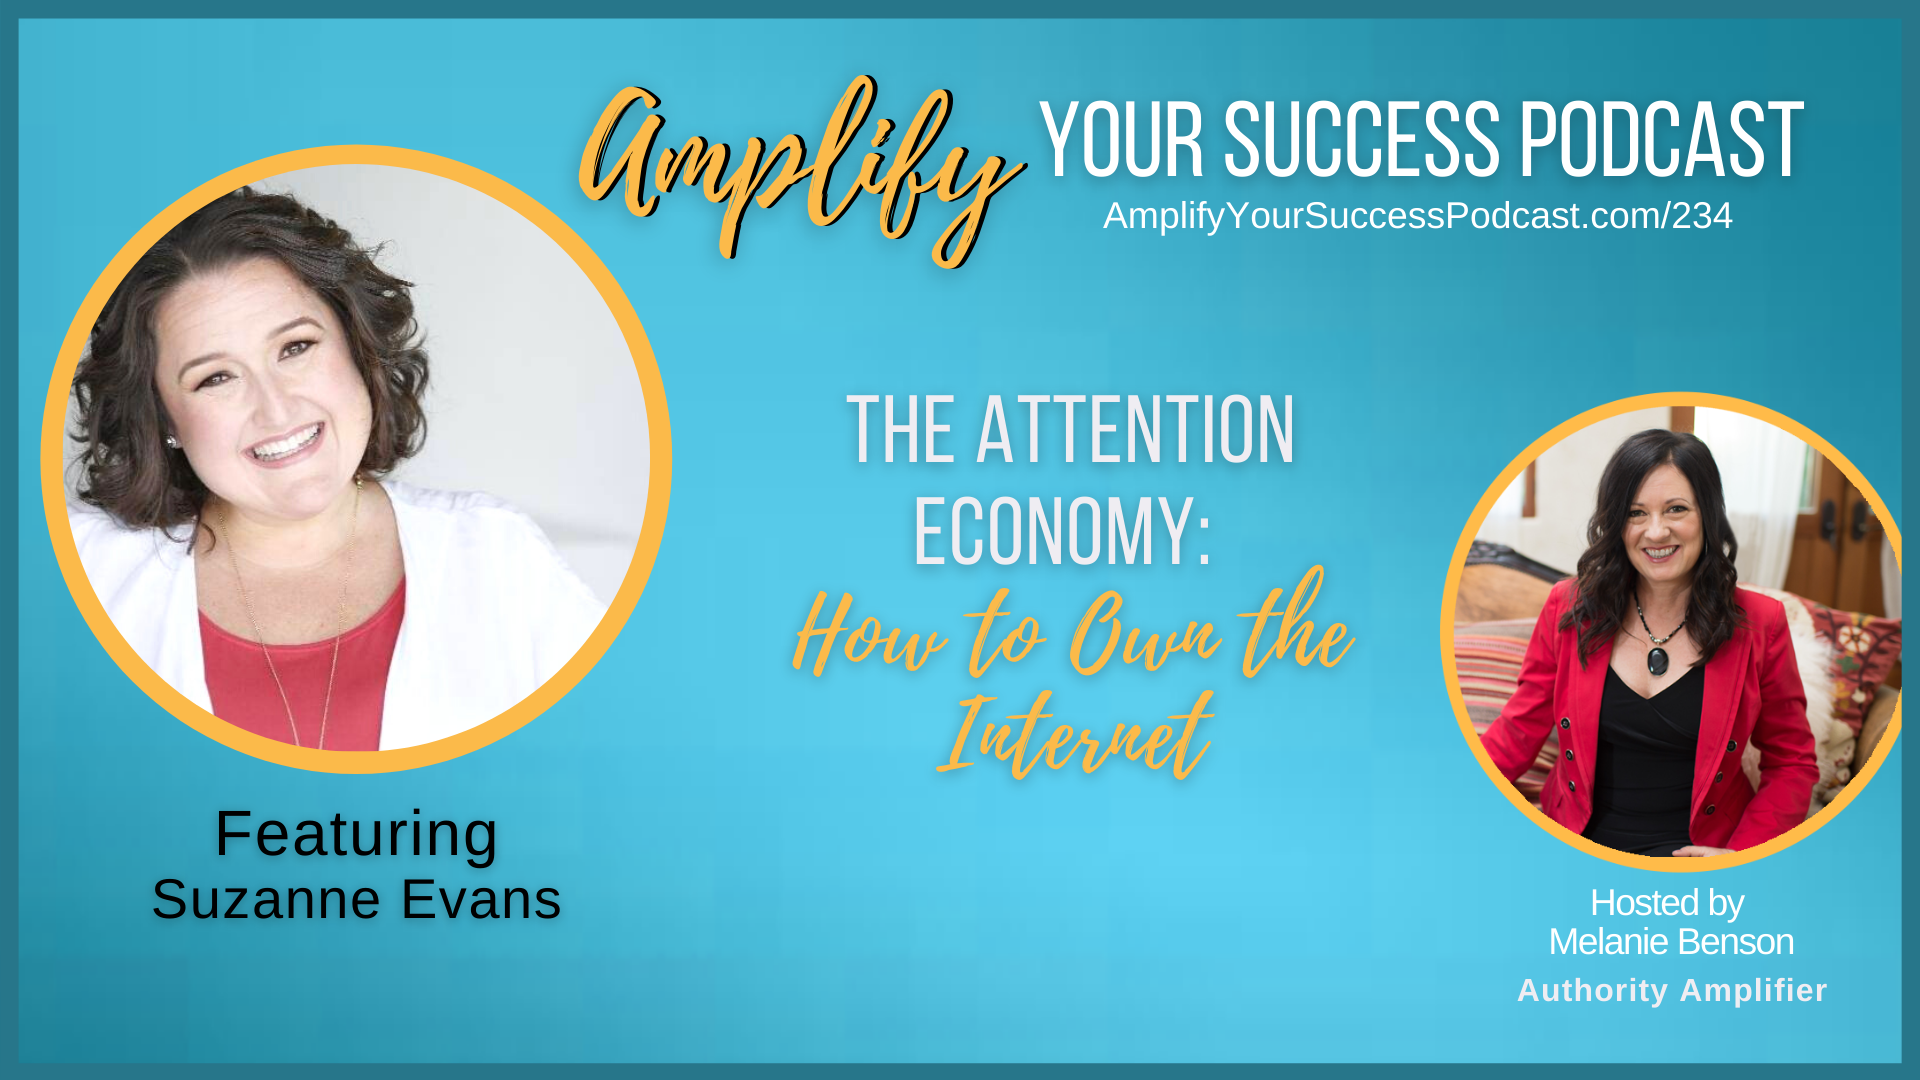 The Attention Economy - How to Stand Out and Own the Internet with Suzanne Evans